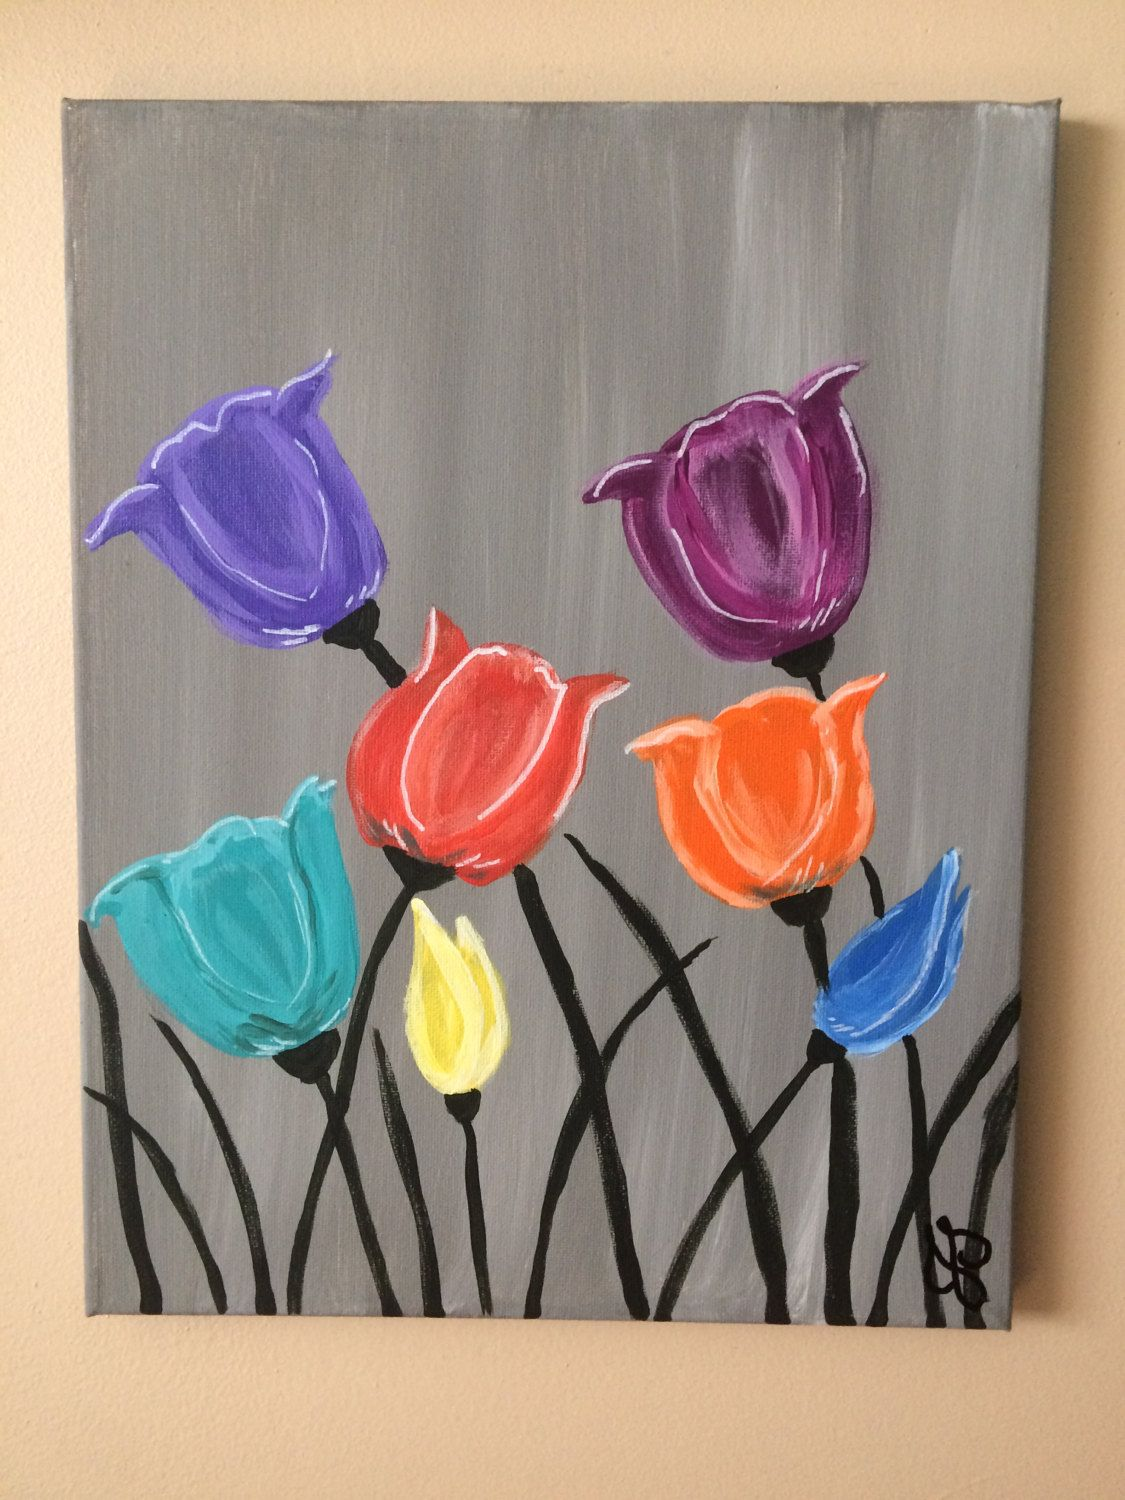 Wild Tulip Flowers Acrylic Painting X Canvas Art Hand Painted Wildflowers Red Orange Yellow Blue Green Purple Petals Gray Background By CanvasCoveArt On